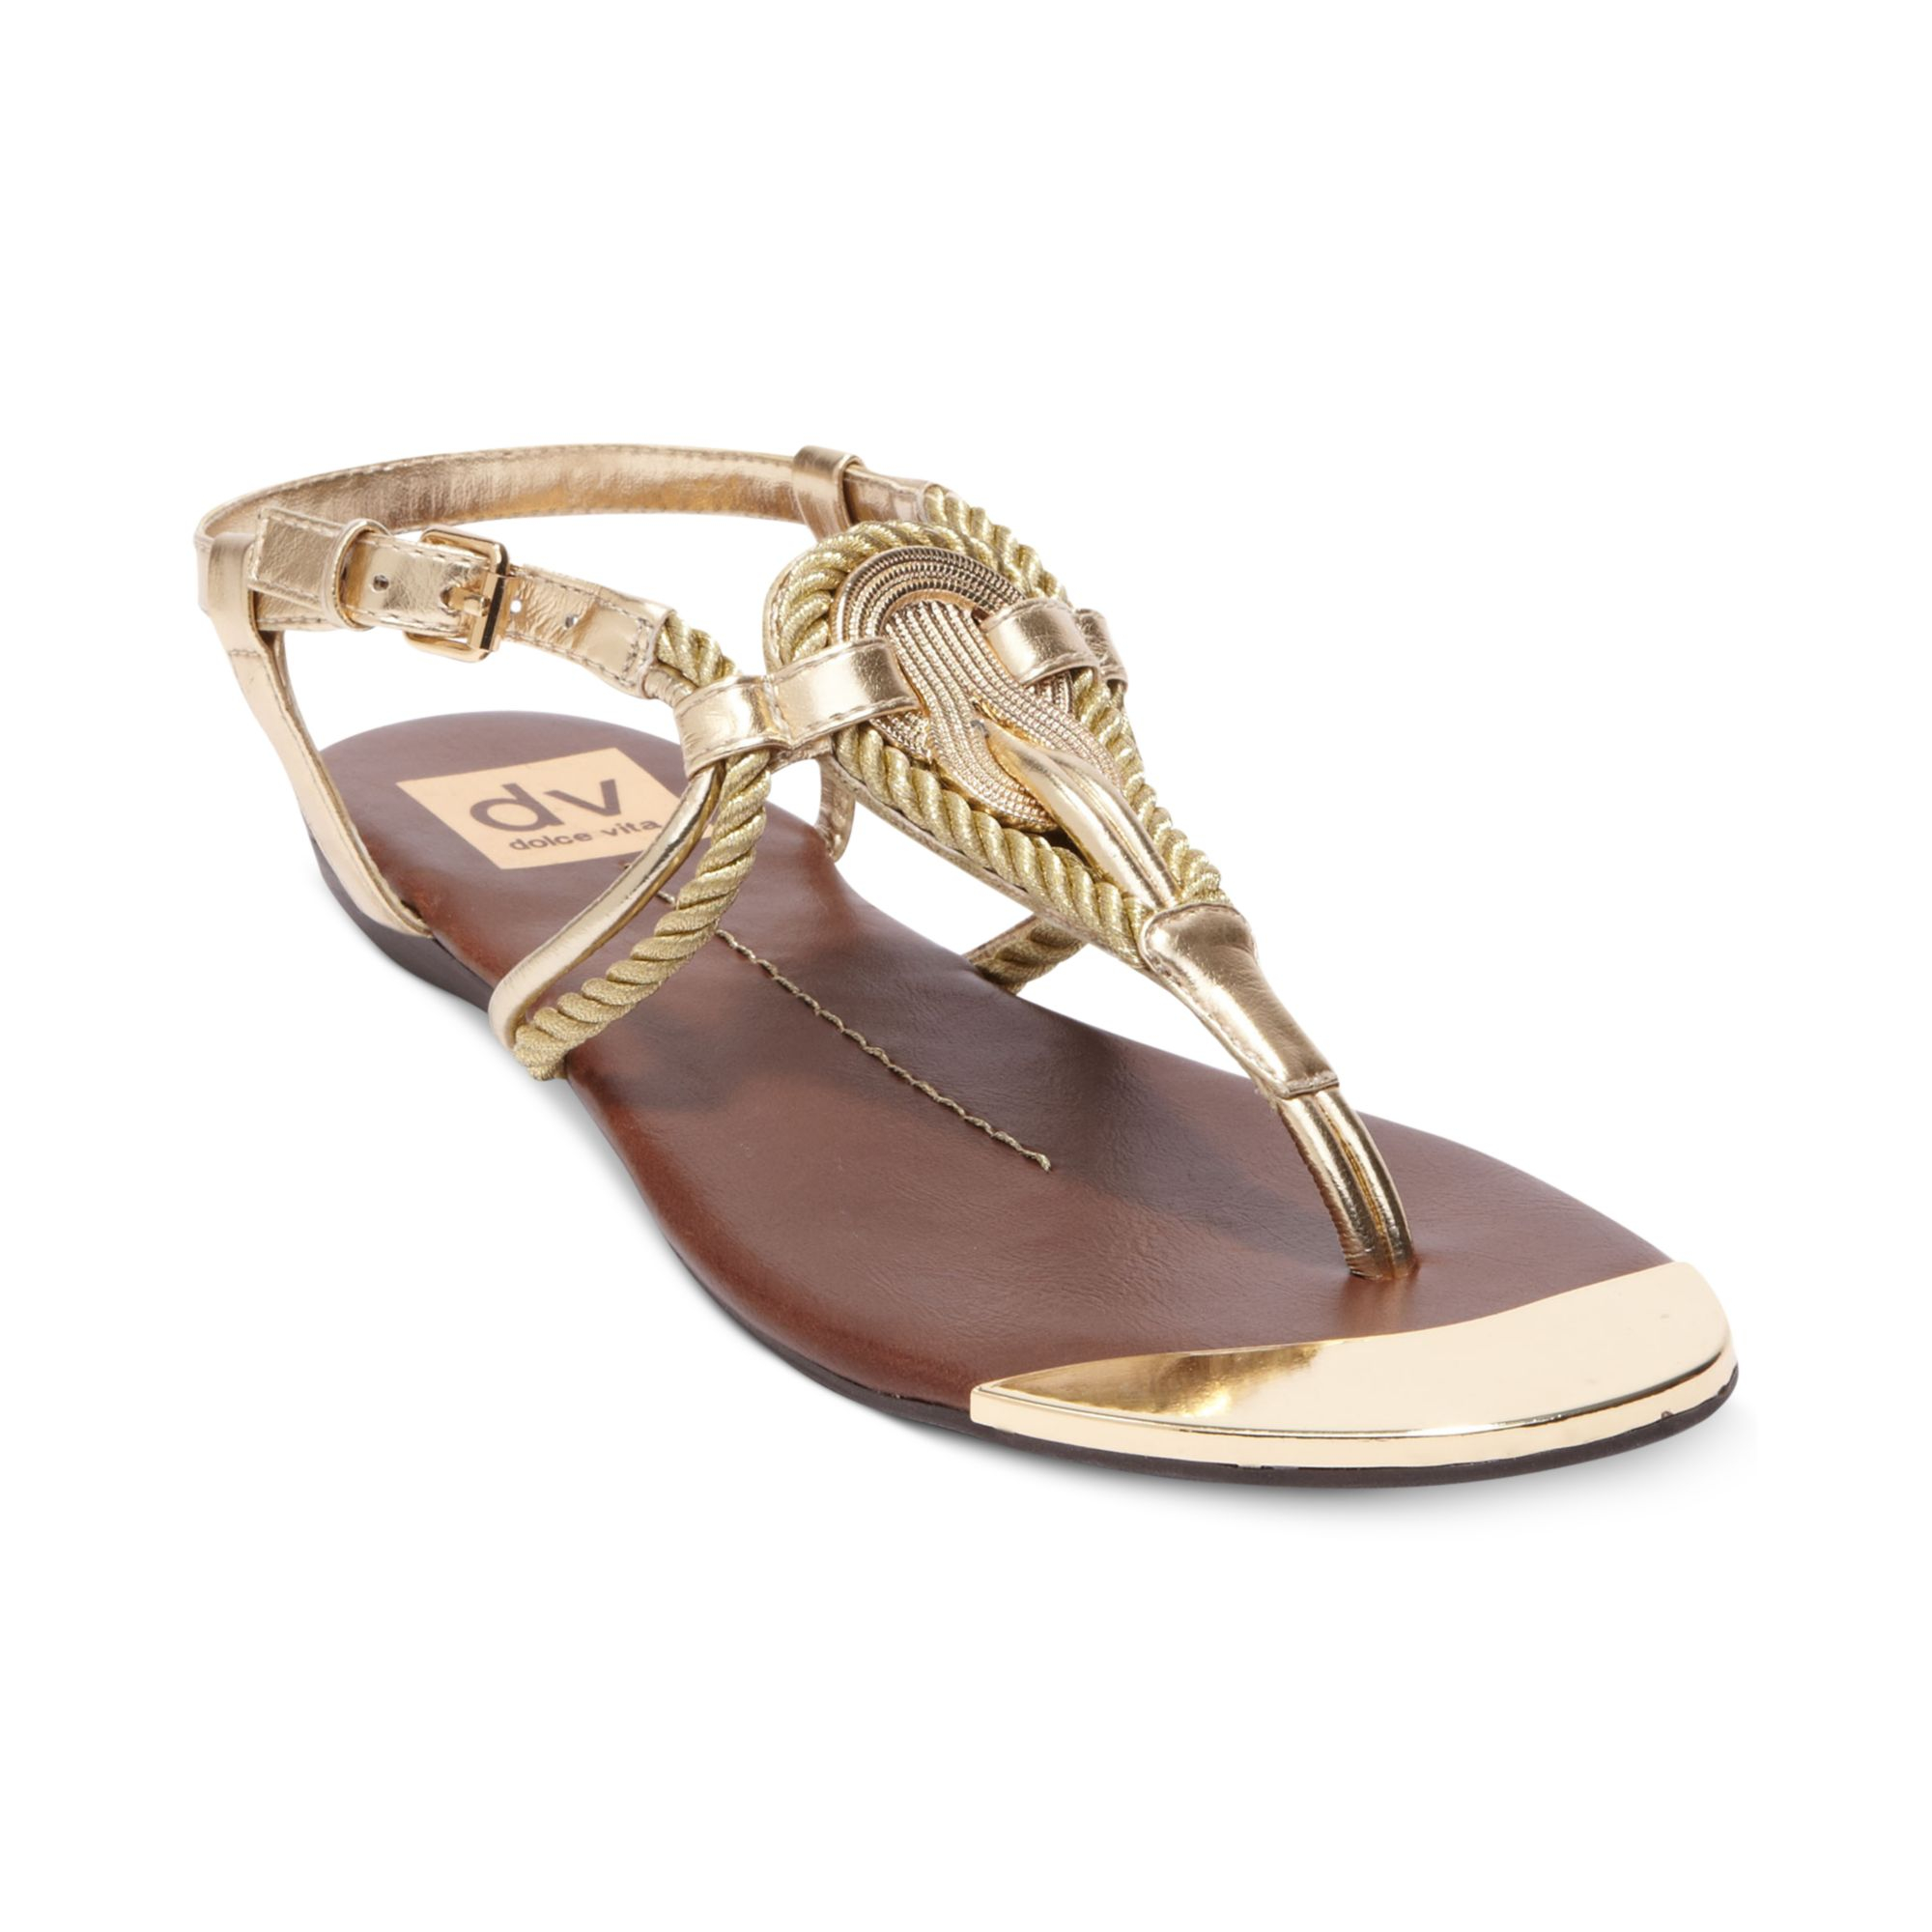 Dolce Vita Dv By Anica Flat Thong Sandals in Gold